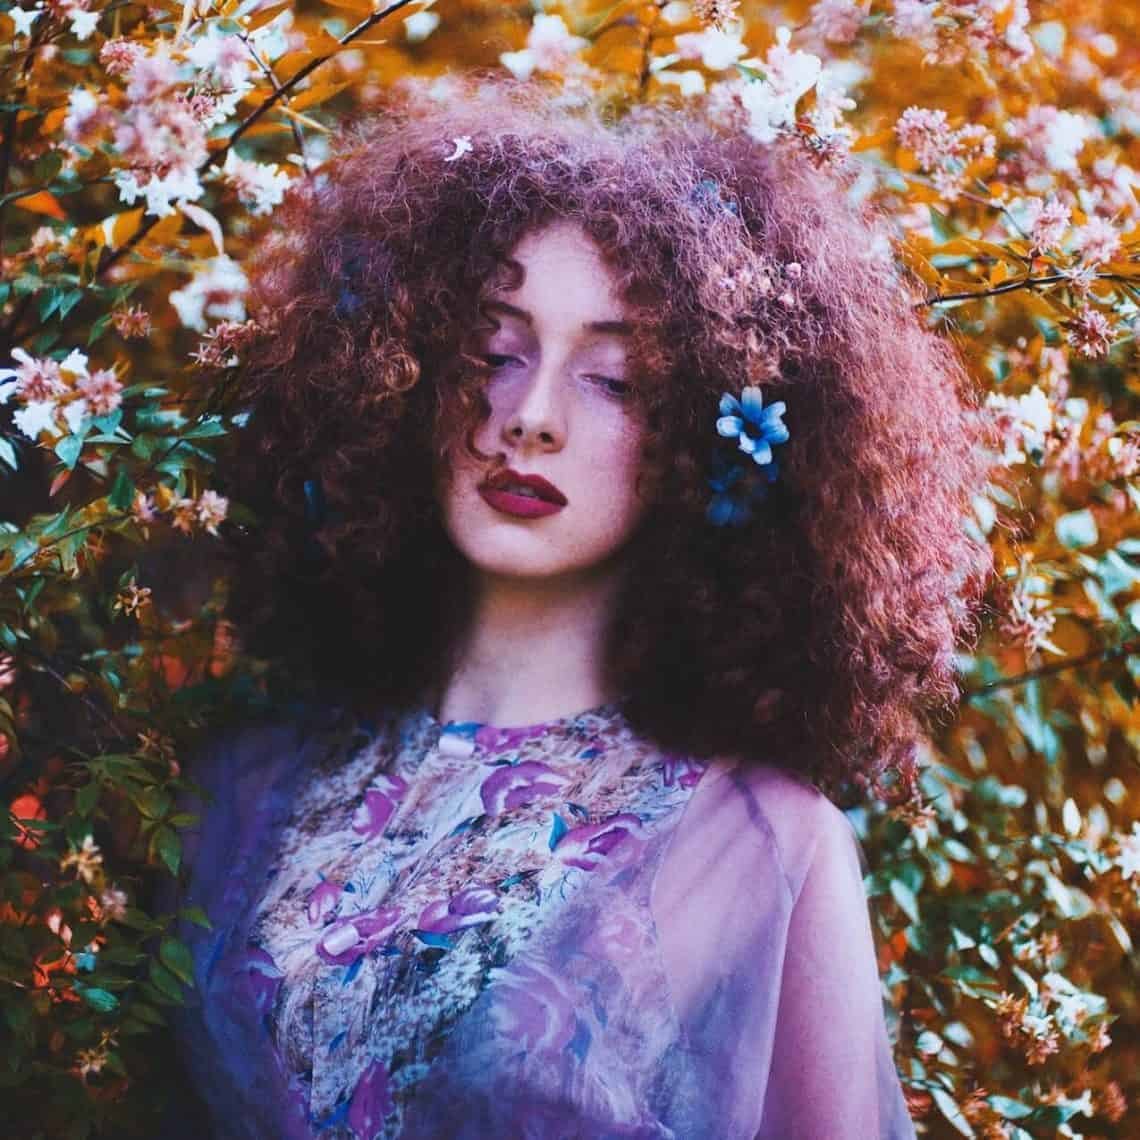 Woman healing from heartbreak, stands with her eyes closed and is surrounded by flowers.